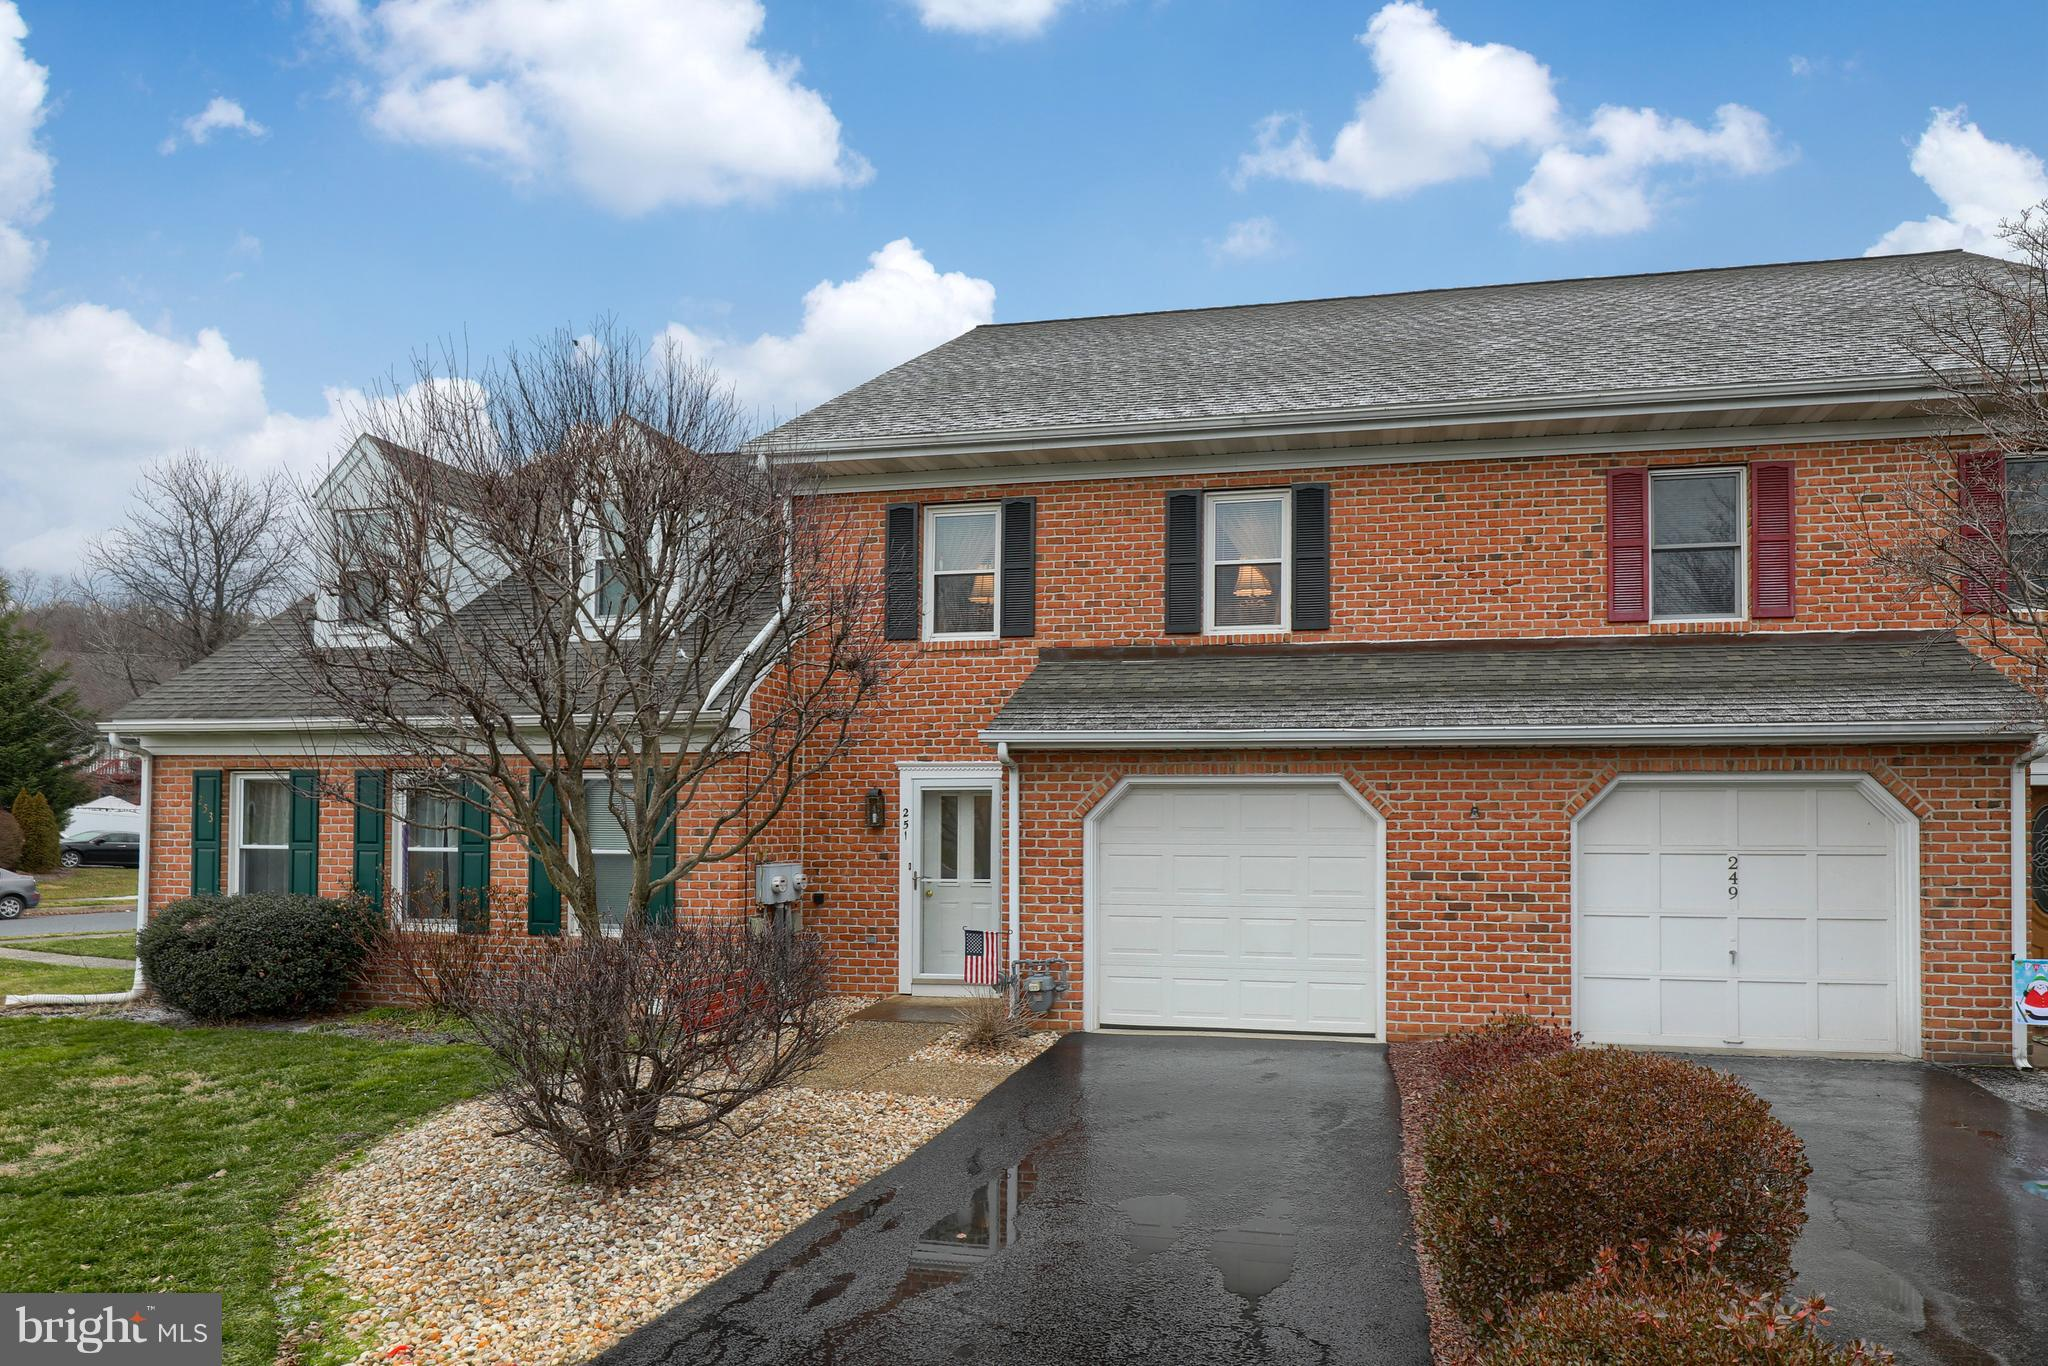 251 HUNTINGTON DRIVE, MOUNTVILLE, PA 17554